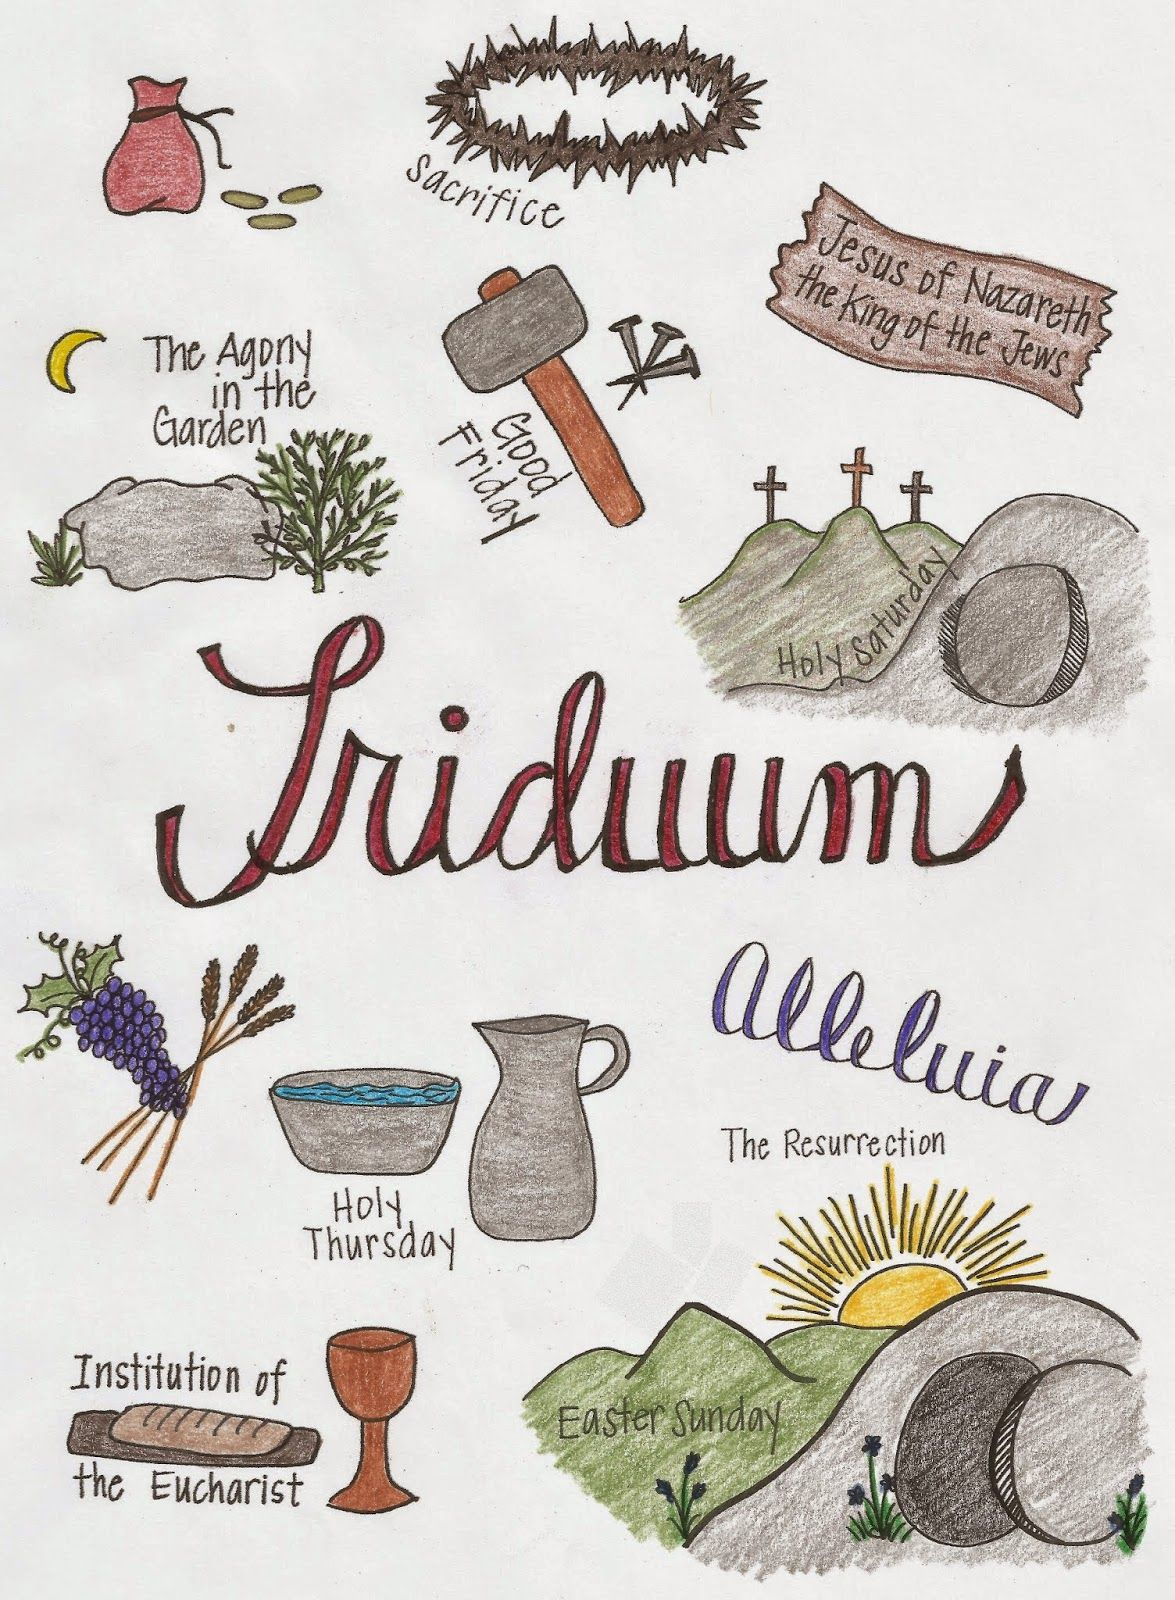 What The Triduum Looks Like Great Printable To Use With Kids During Holy Week To Talk About The